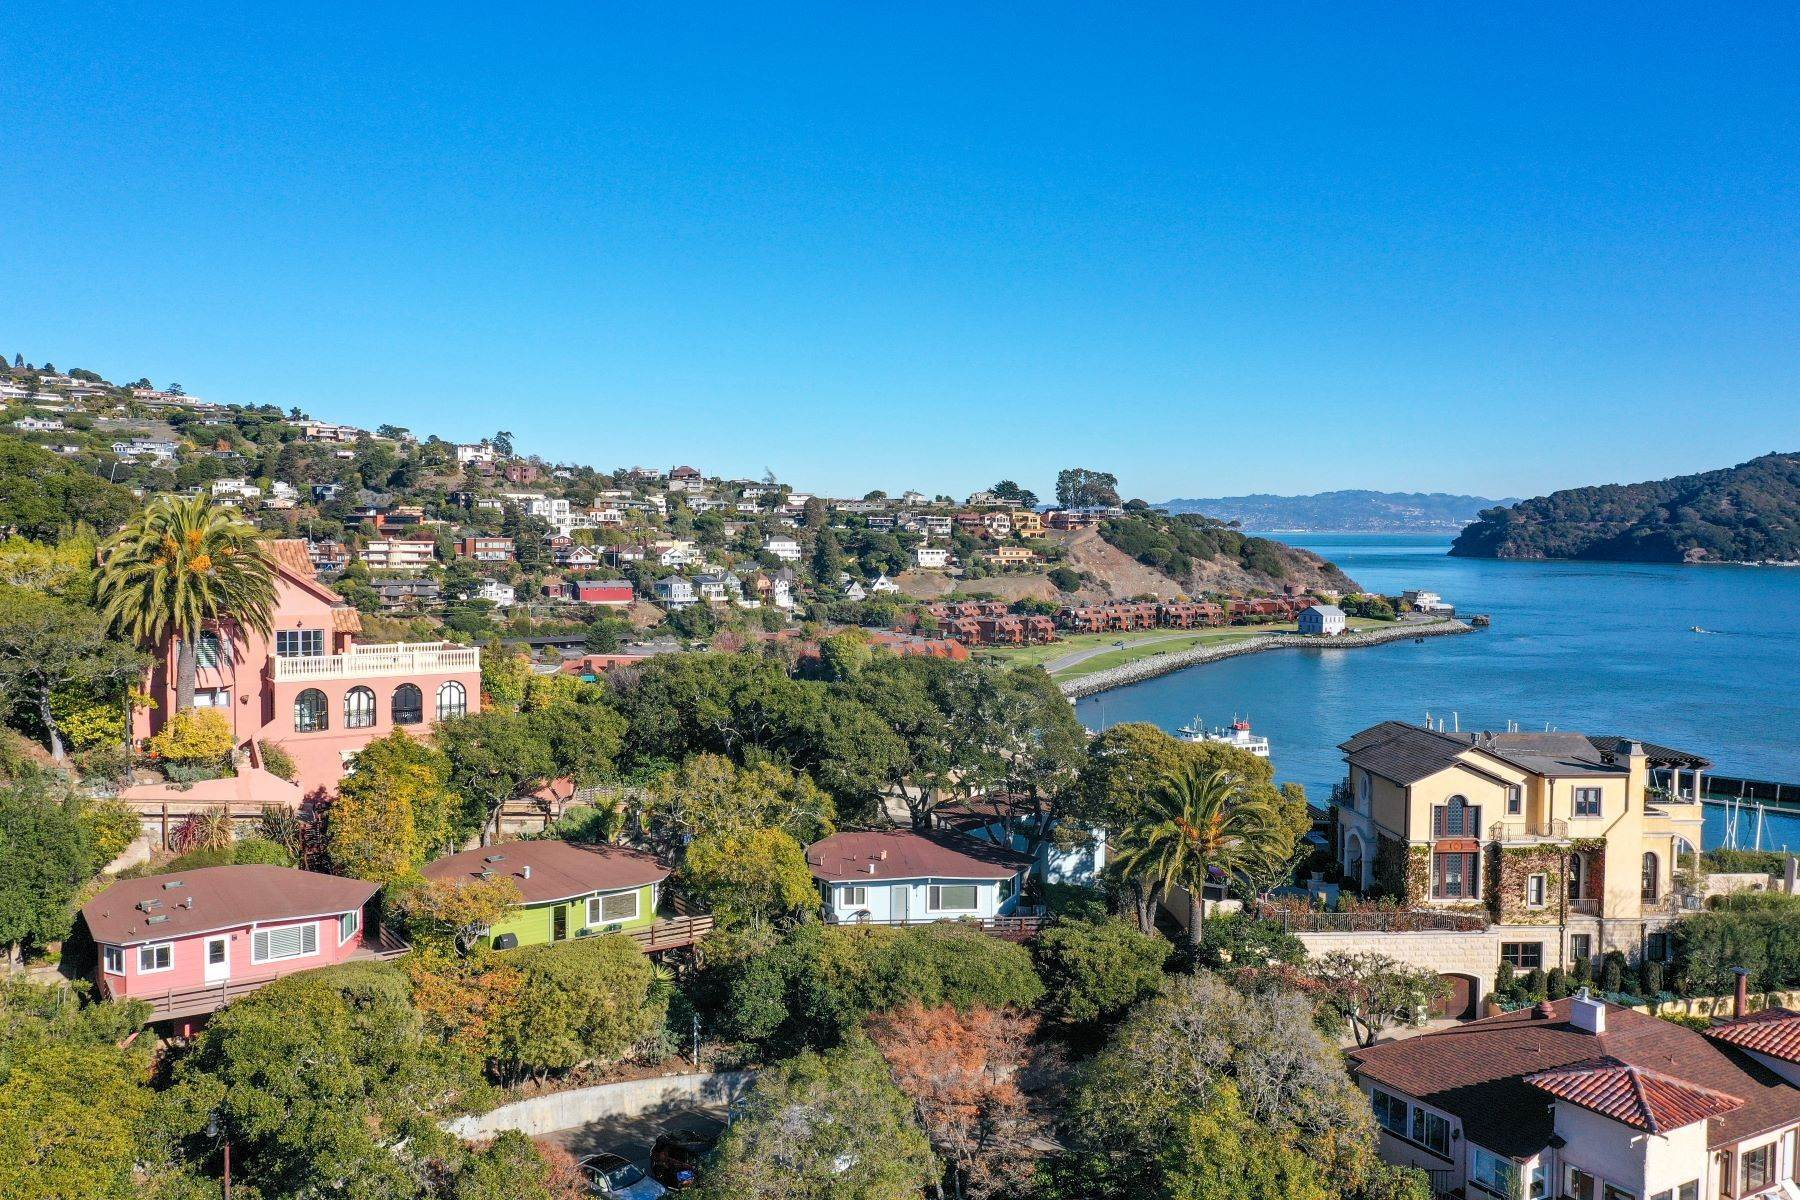 Single Family Homes for Sale at Corinthian Island Cottages 49 Alcatraz Avenue Belvedere, California 94920 United States